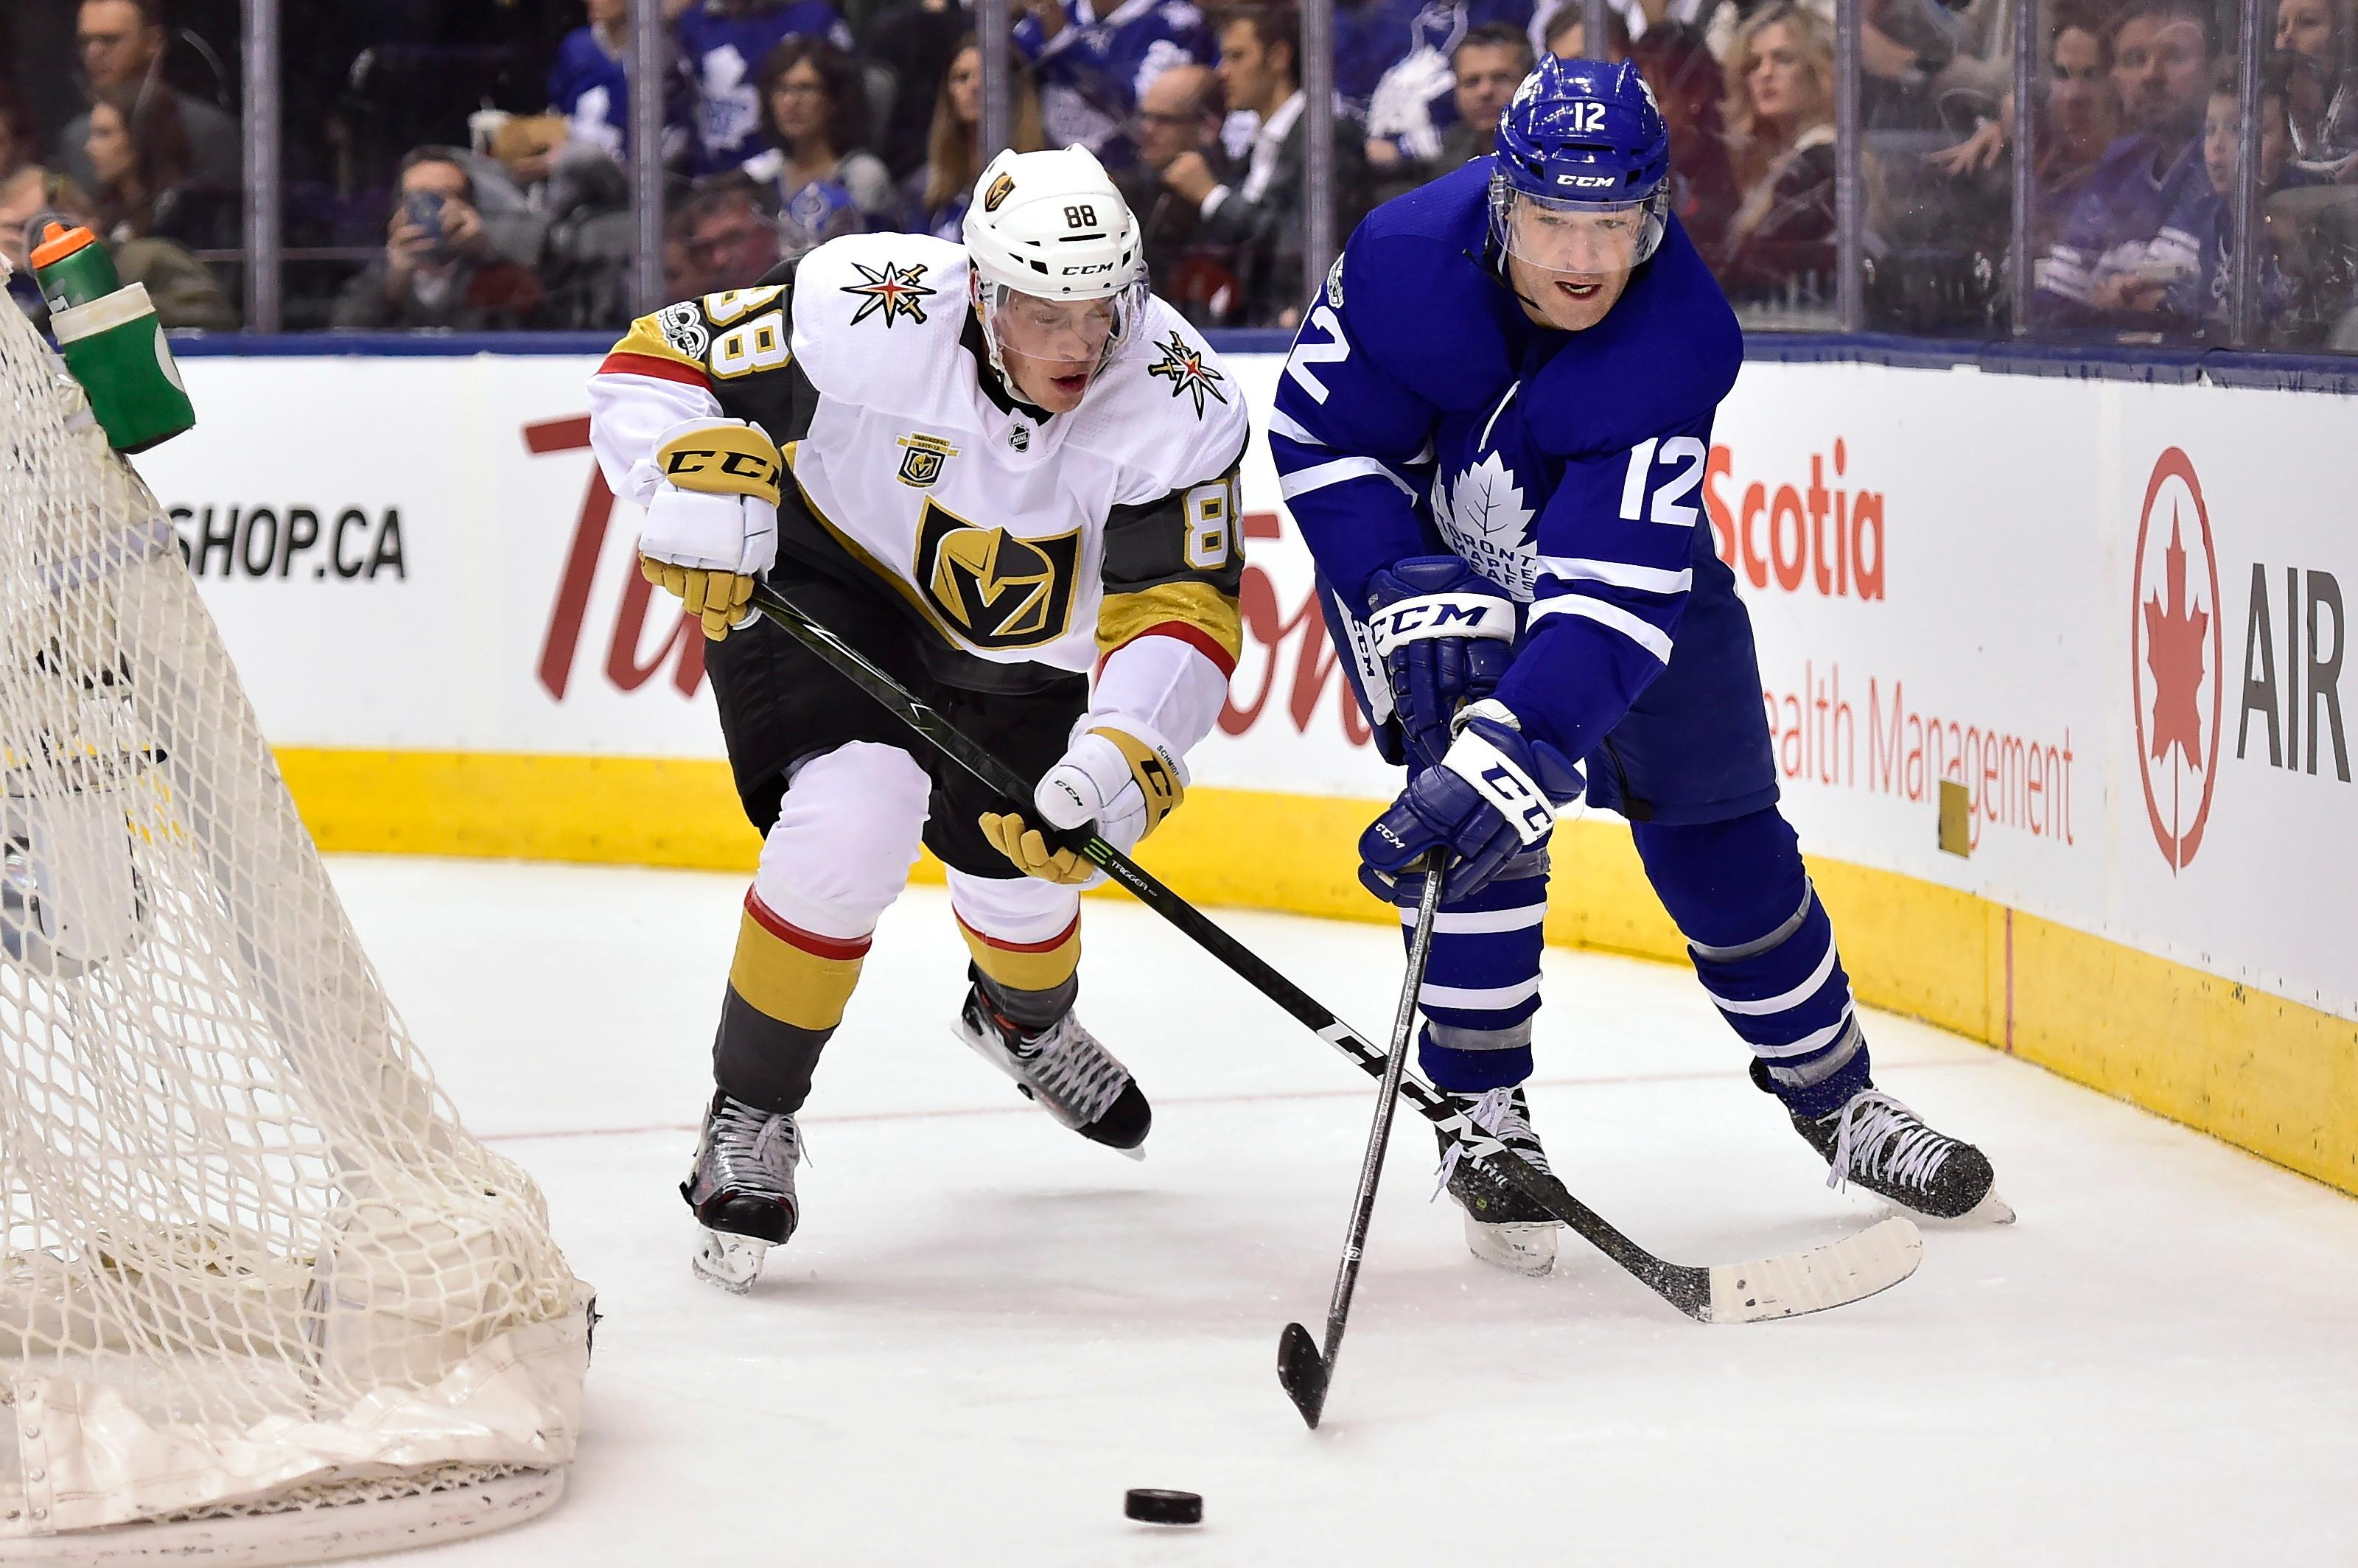 Toronto Maple Leafs center Patrick Marleau (12) and Vegas Golden Knights defenseman Nate Schmidt (88) battle for the puck behind the net during the second period of an NHL hockey game, Monday, Nov. 6, 2017, in Toronto. (Frank Gunn/The Canadian Press via AP)